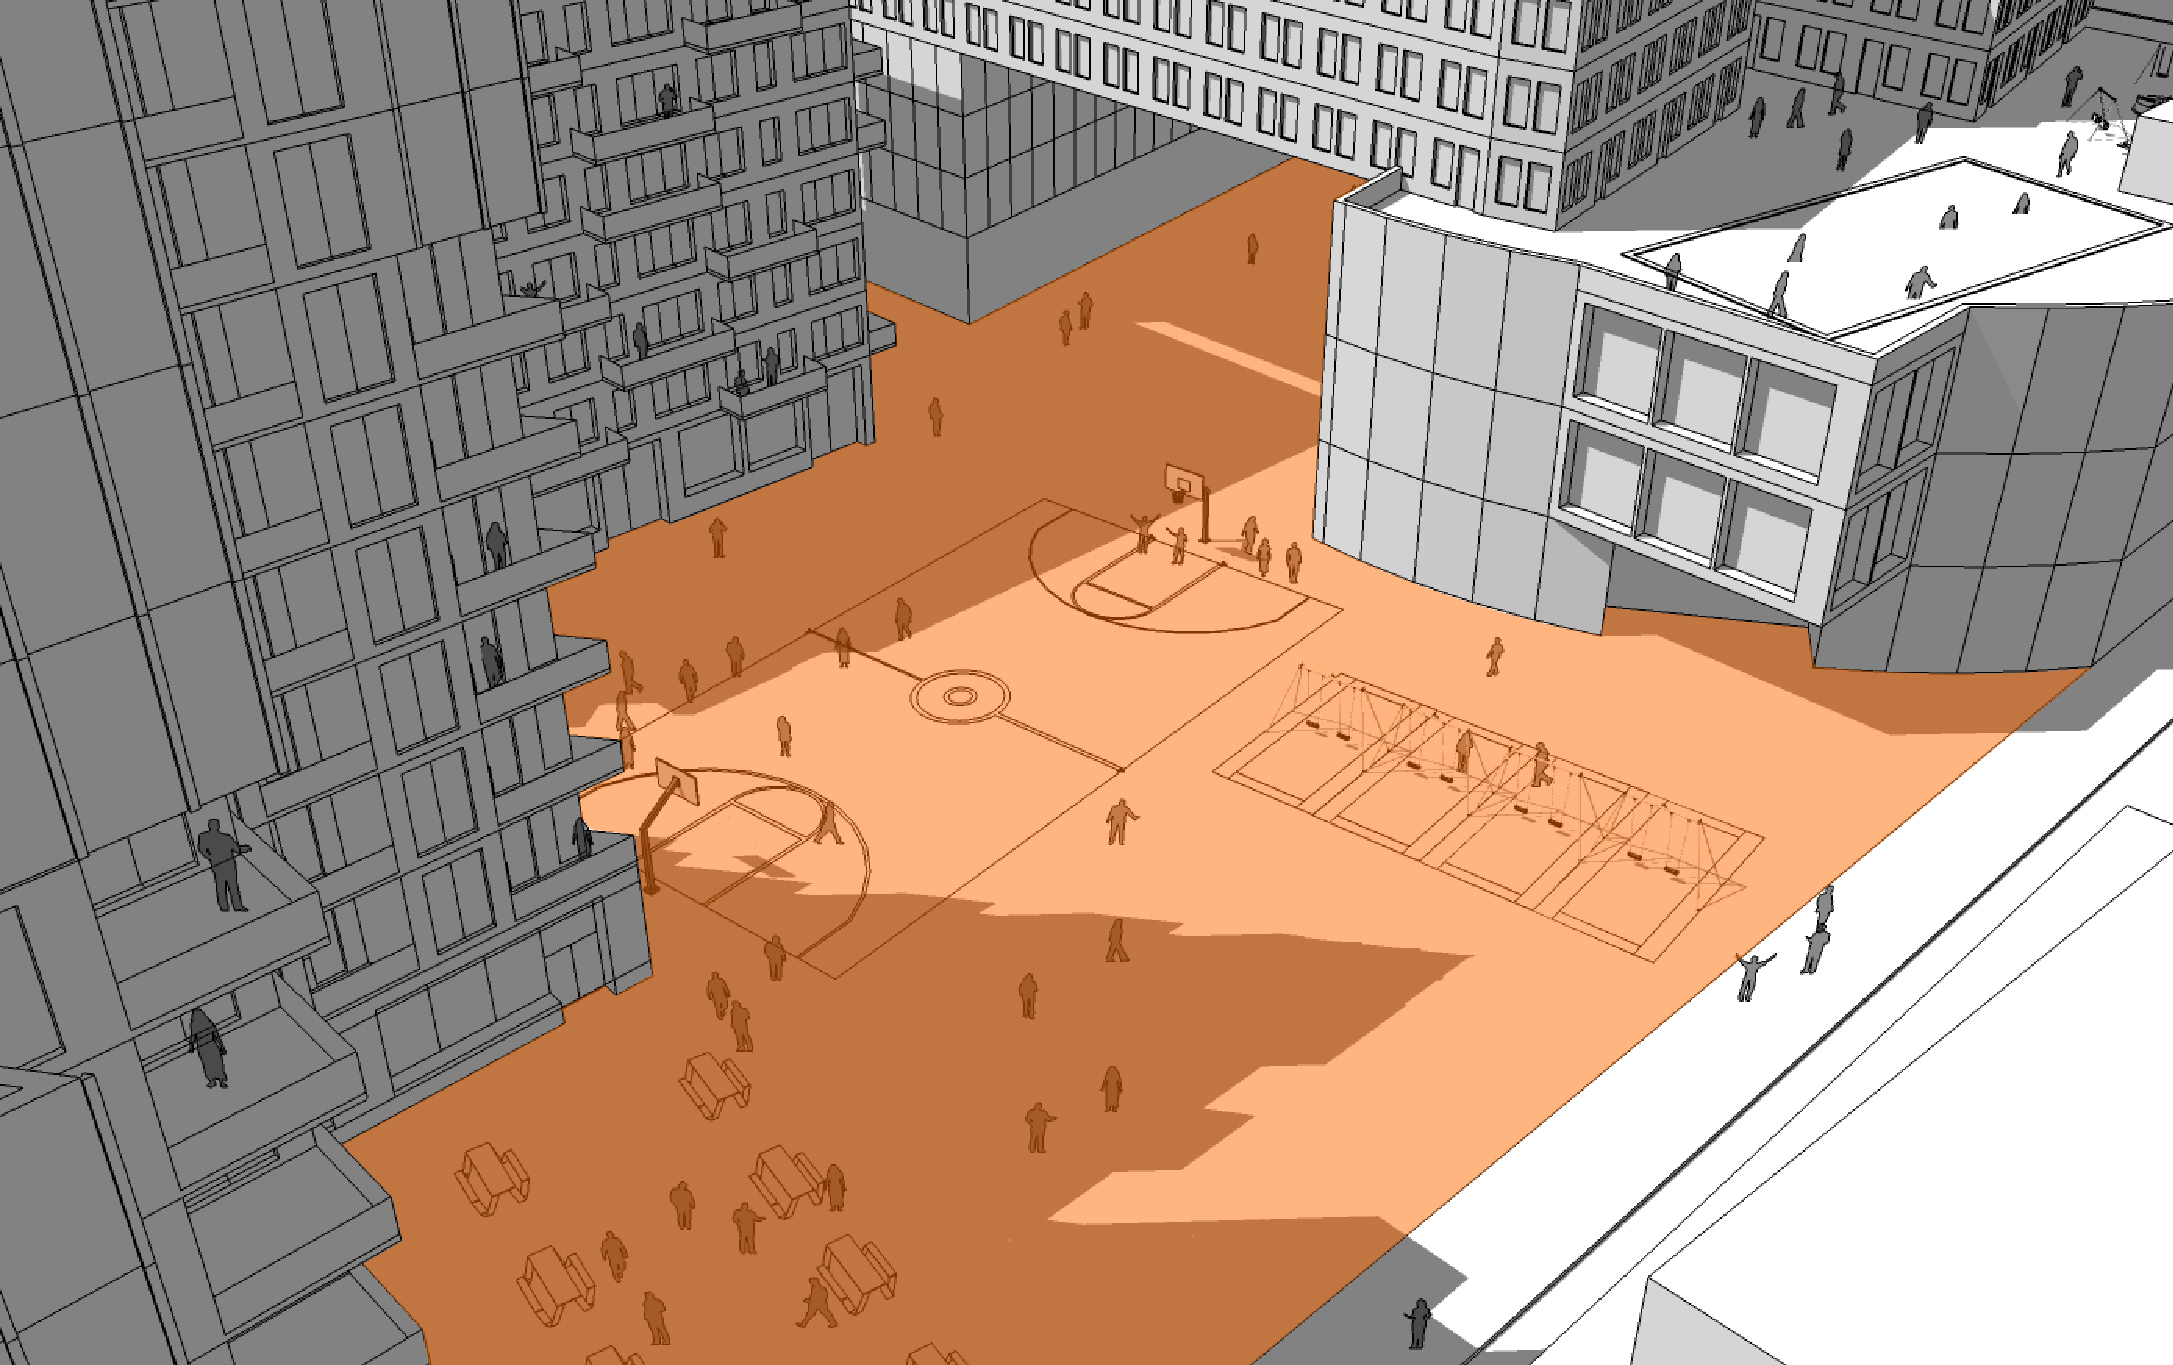 Socio-spatial Relationships Study: Schoolyard As Public Square